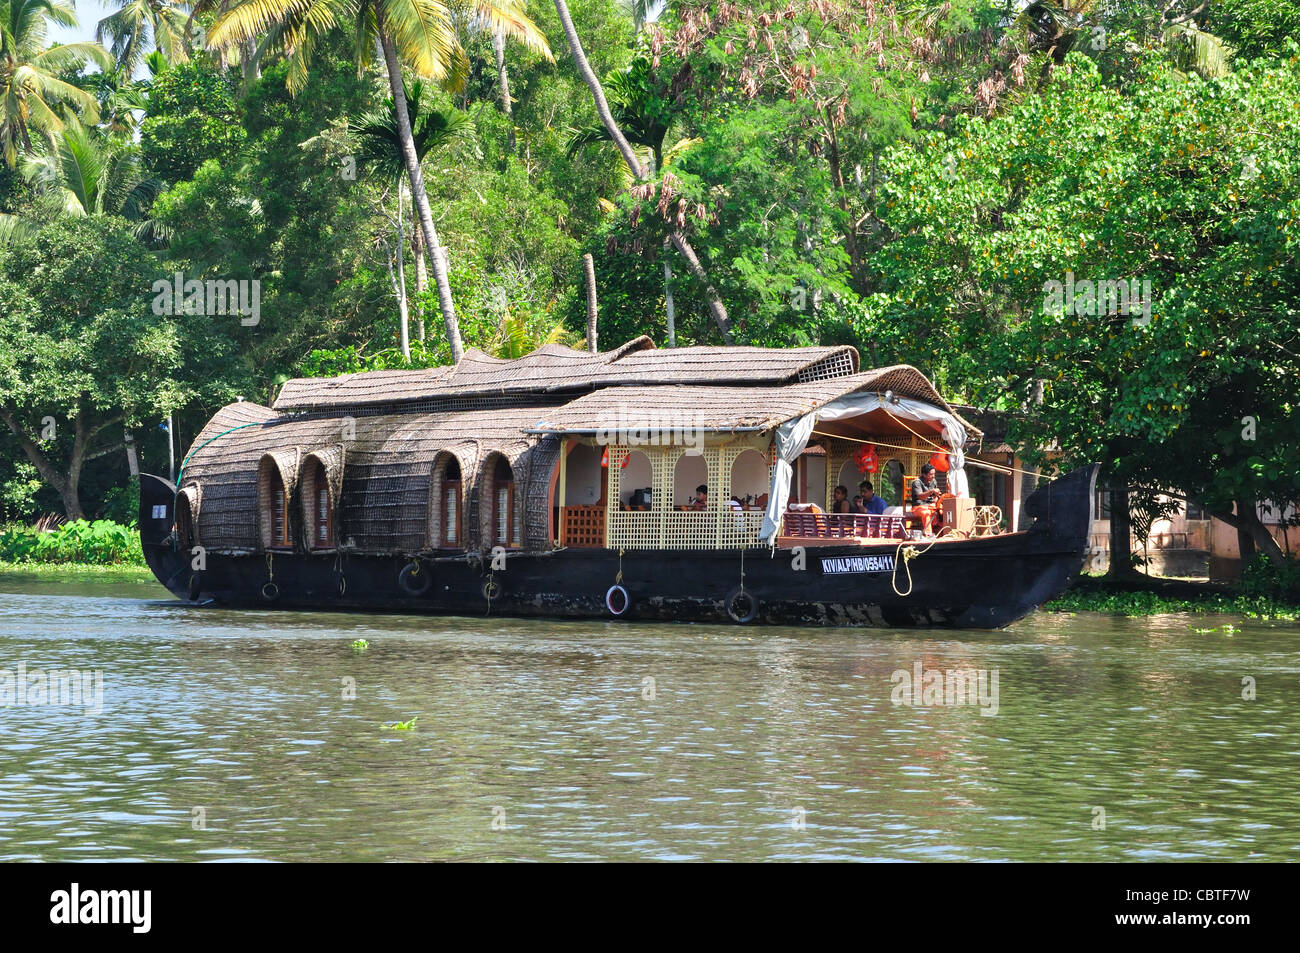 Waterscape in Kerala, India.. - Stock Image